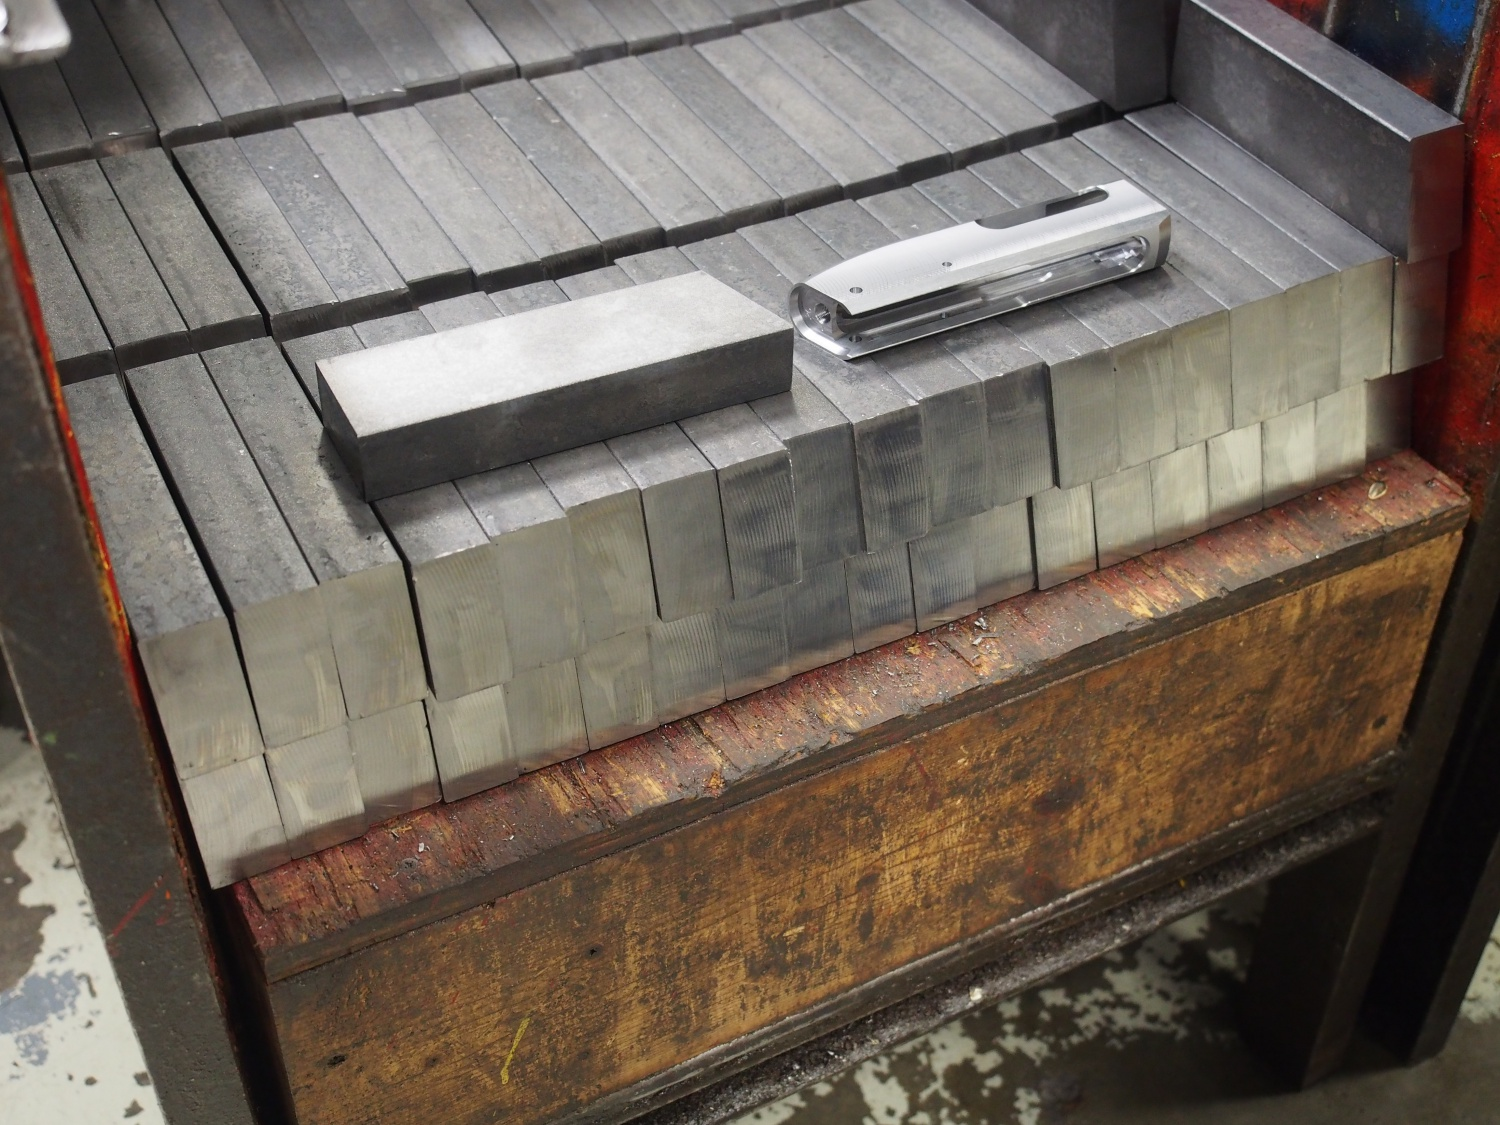 Blocks of raw material for shotgun receivers. One raw block shown next to a partially completed receiver. Each raw block weighs over 20 pounds.